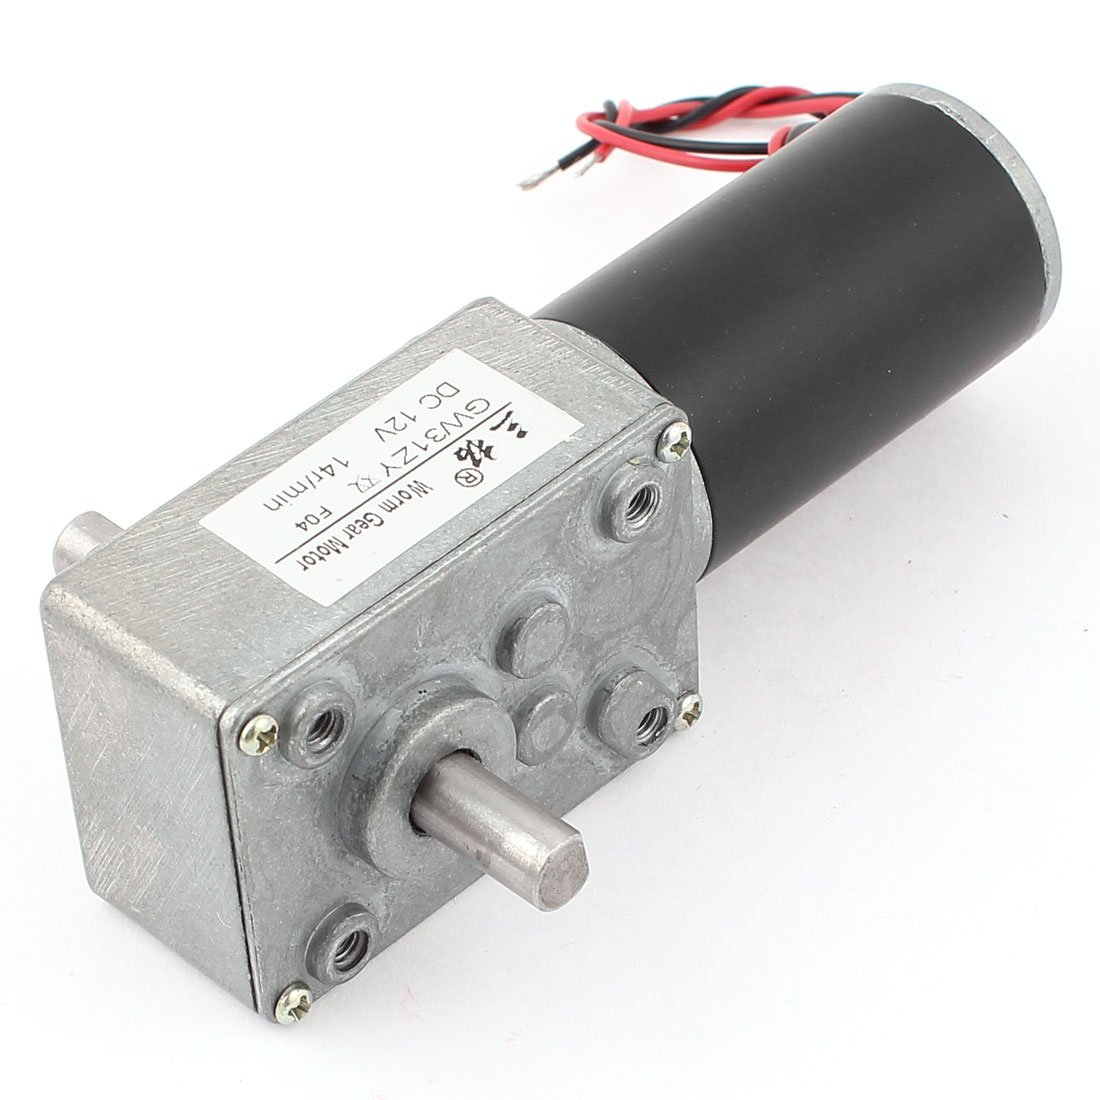 uxcell DC 12V 14RPM 8mmx13mm Double Shaft Worm Geared Motor